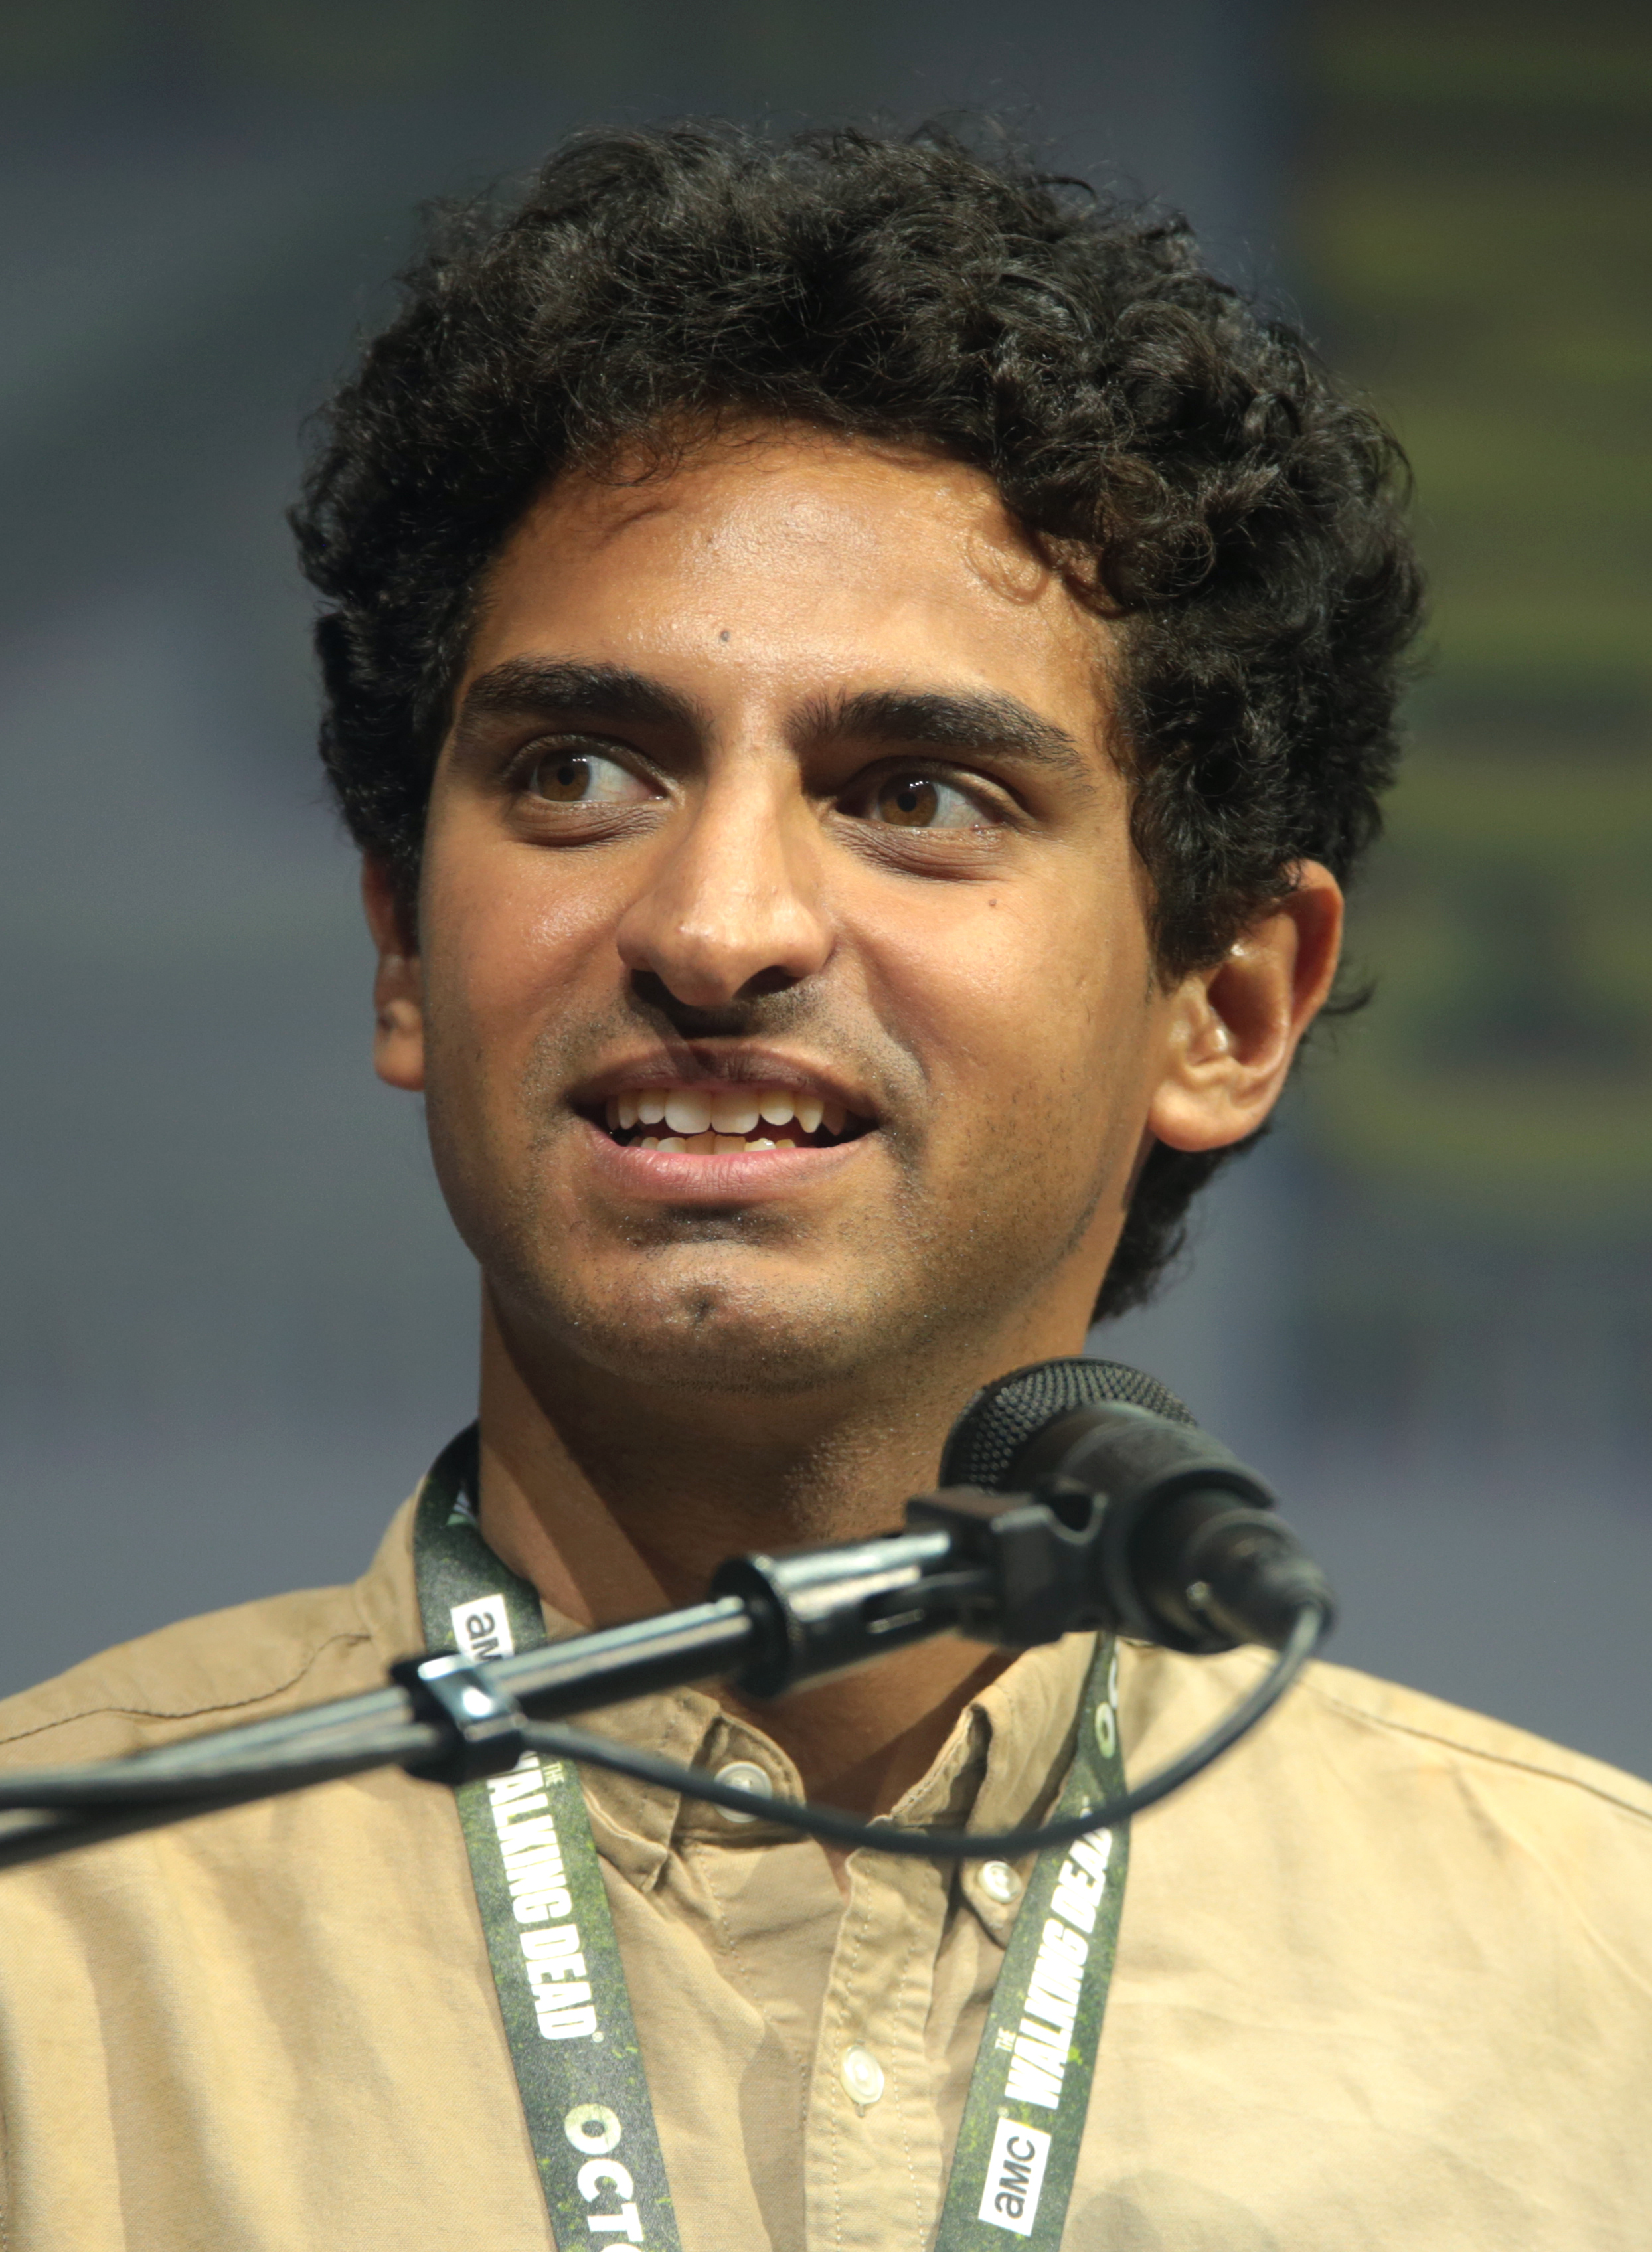 The 29-year old son of father (?) and mother(?) Karan Soni in 2018 photo. Karan Soni earned a  million dollar salary - leaving the net worth at 2 million in 2018